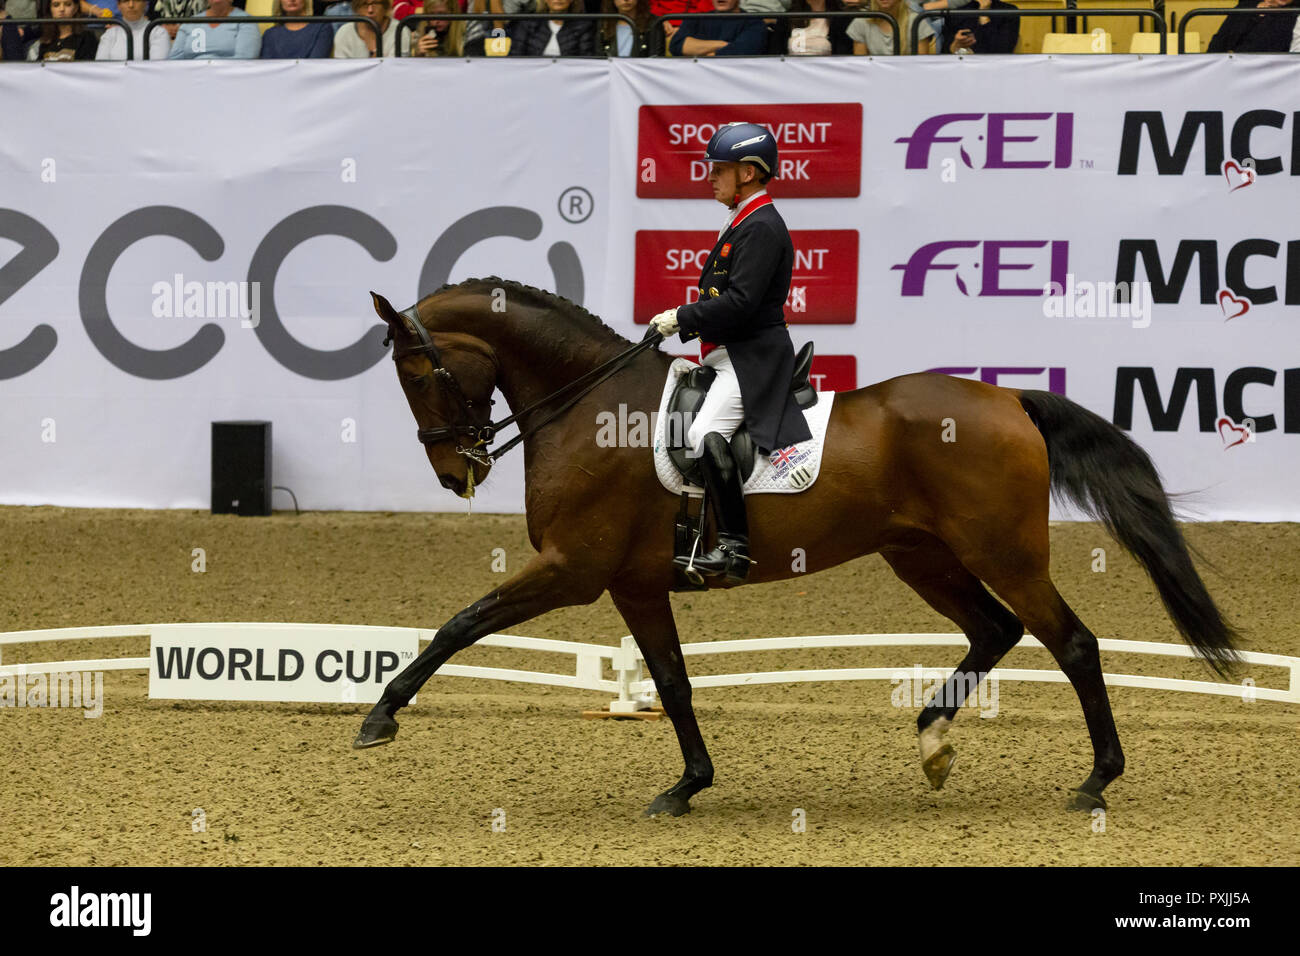 Herning, Denmark. 21st October, 2018. Richard Davison of Great Britain riding Bubblingh during the FEI World Cup 2018 in freestyle dressage in Denmark. Credit: OJPHOTOS/Alamy Live News Stock Photo